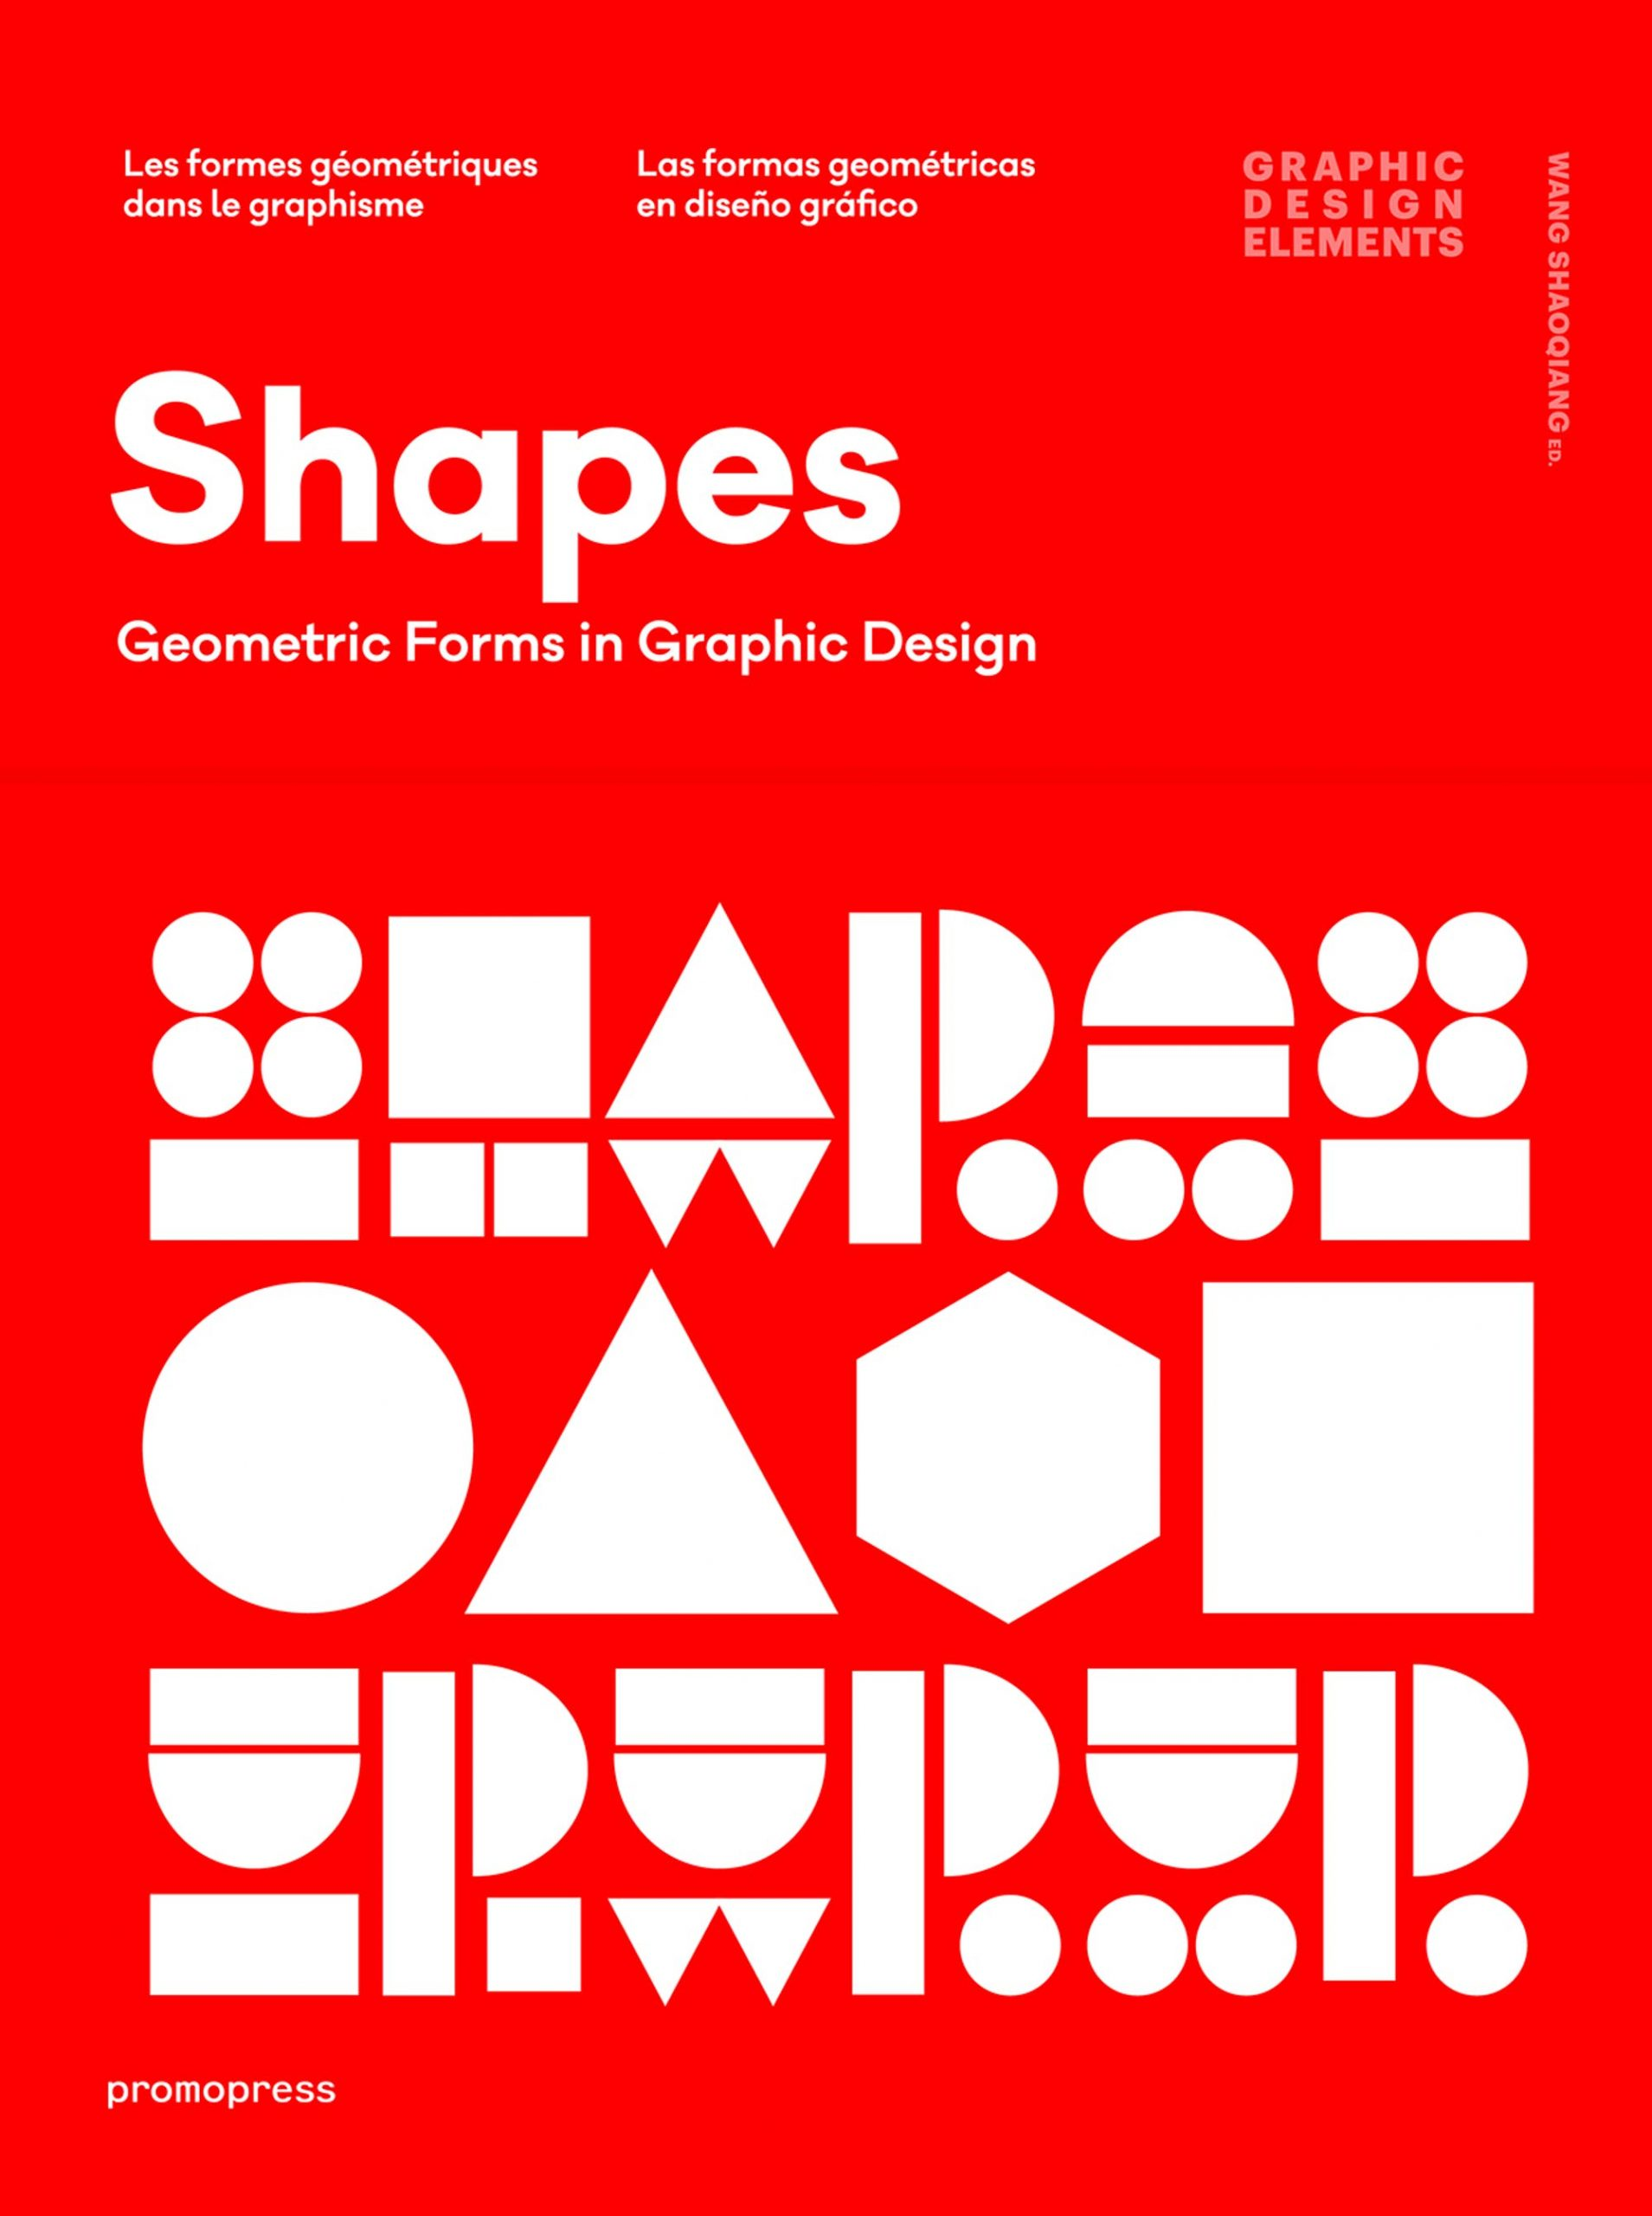 Shapes – Geometric Forms in Graphic Design